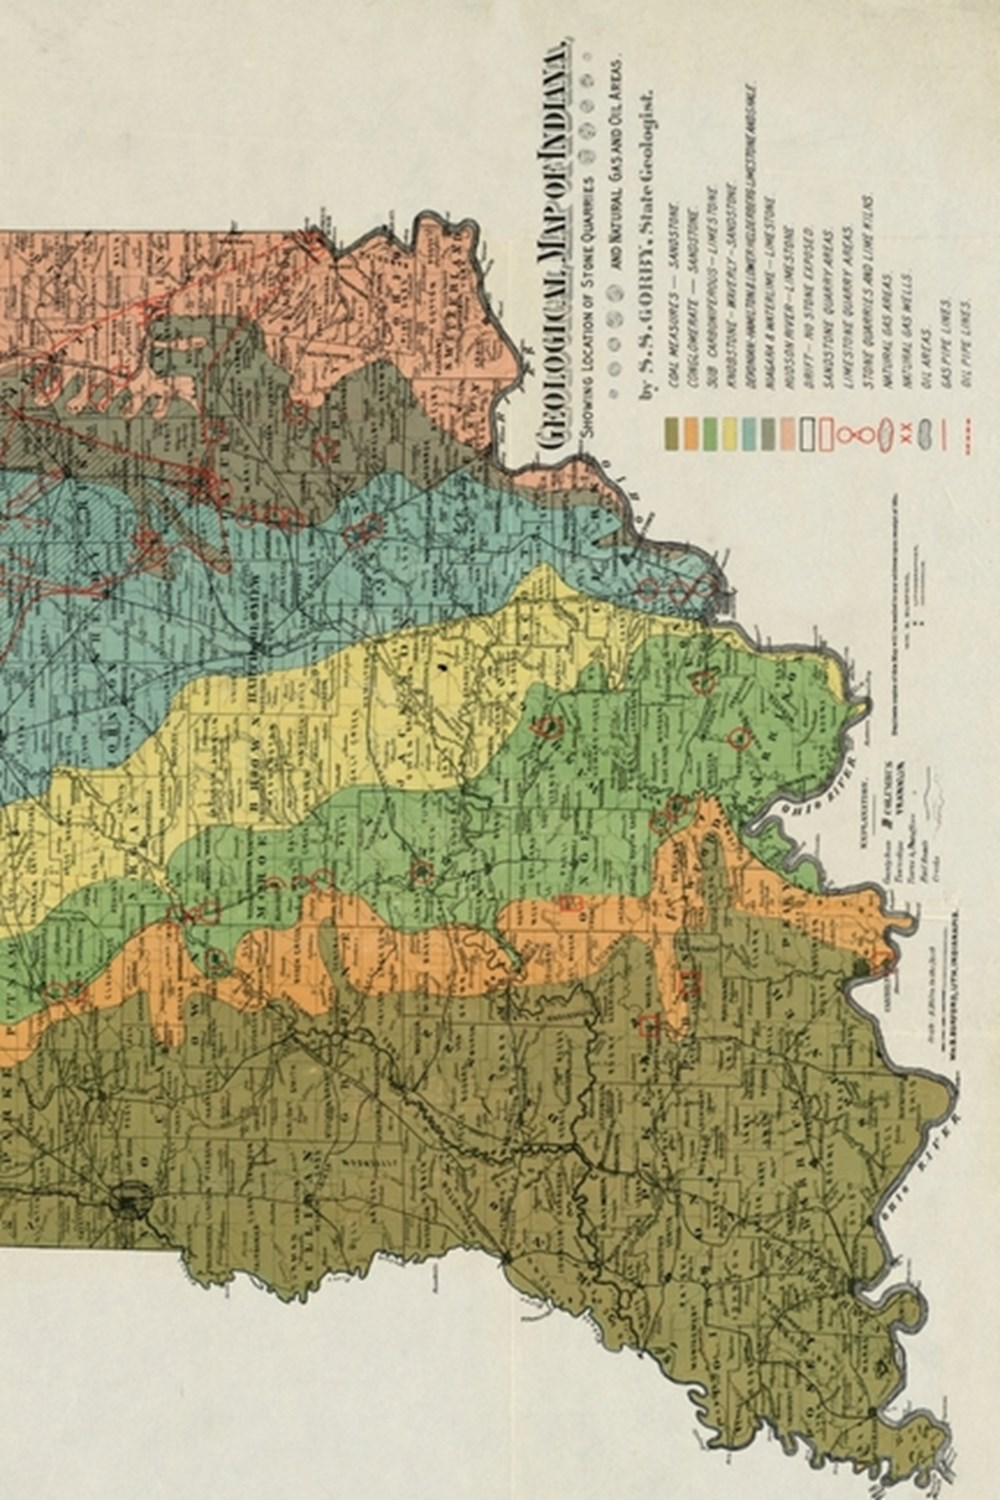 19th Century Geological Map of Indiana - a Poetose Notebook / Journal / Diary (50 Pages/25 Sheets)